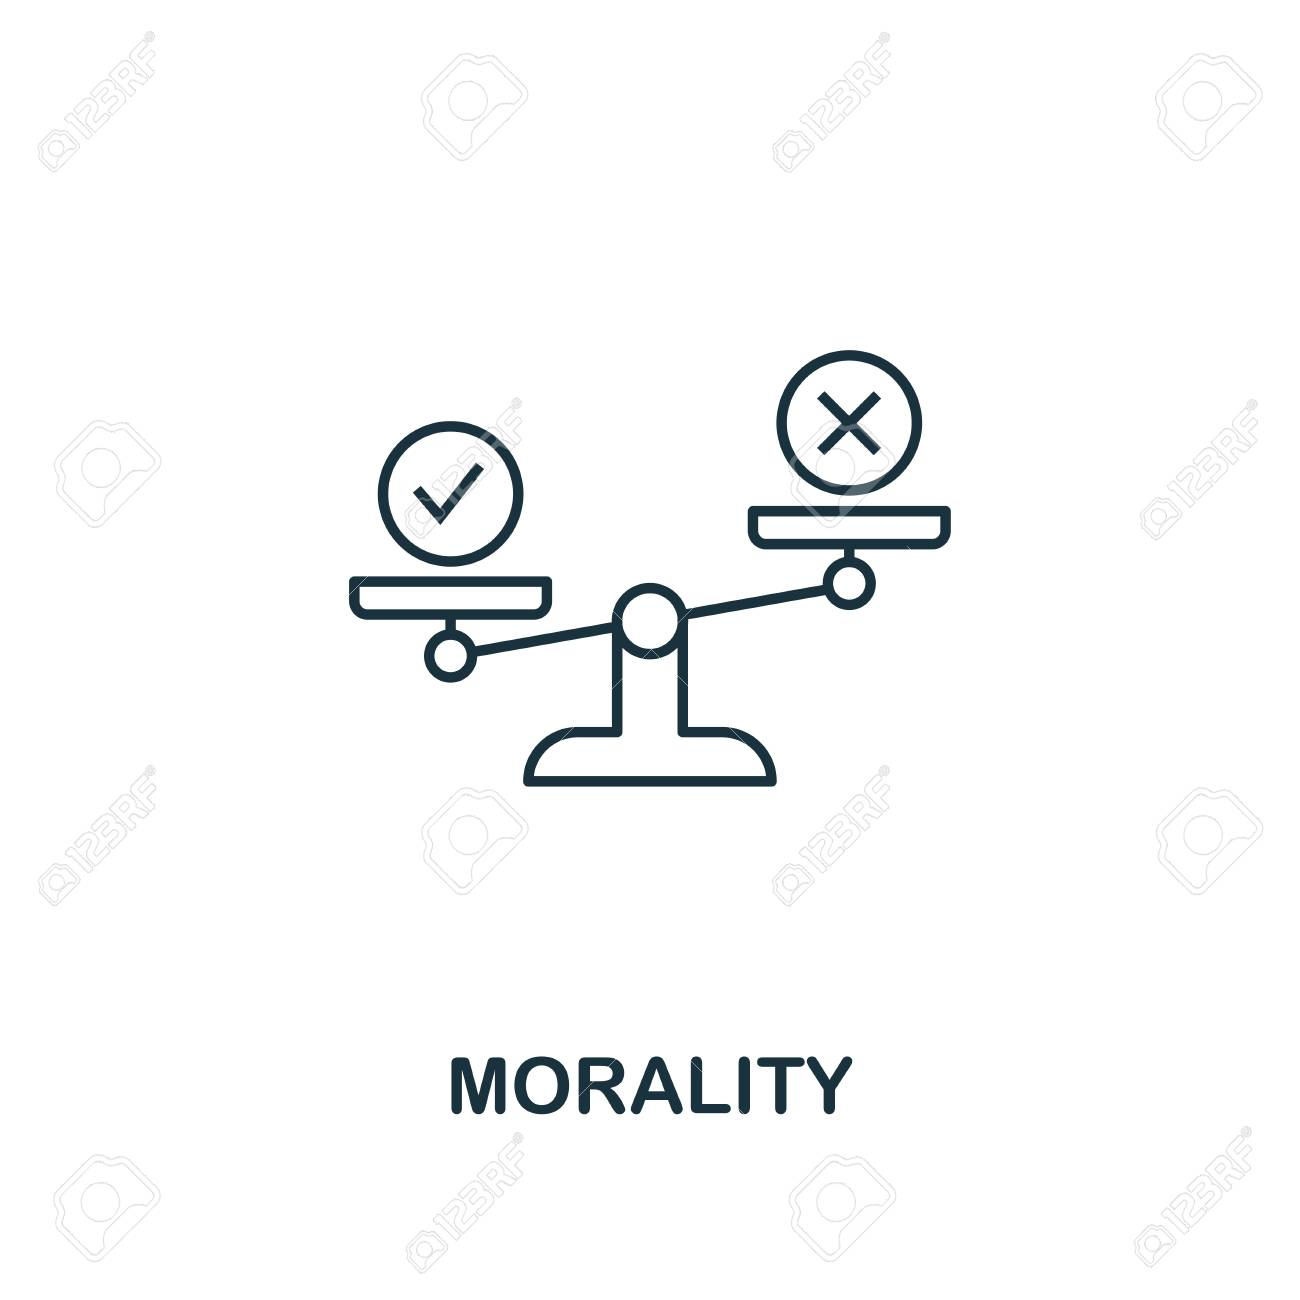 Morality icon. Thin line design symbol from business ethics icons collection. Pixel perfect morality icon for web design, apps, software, print usage. - 120744113